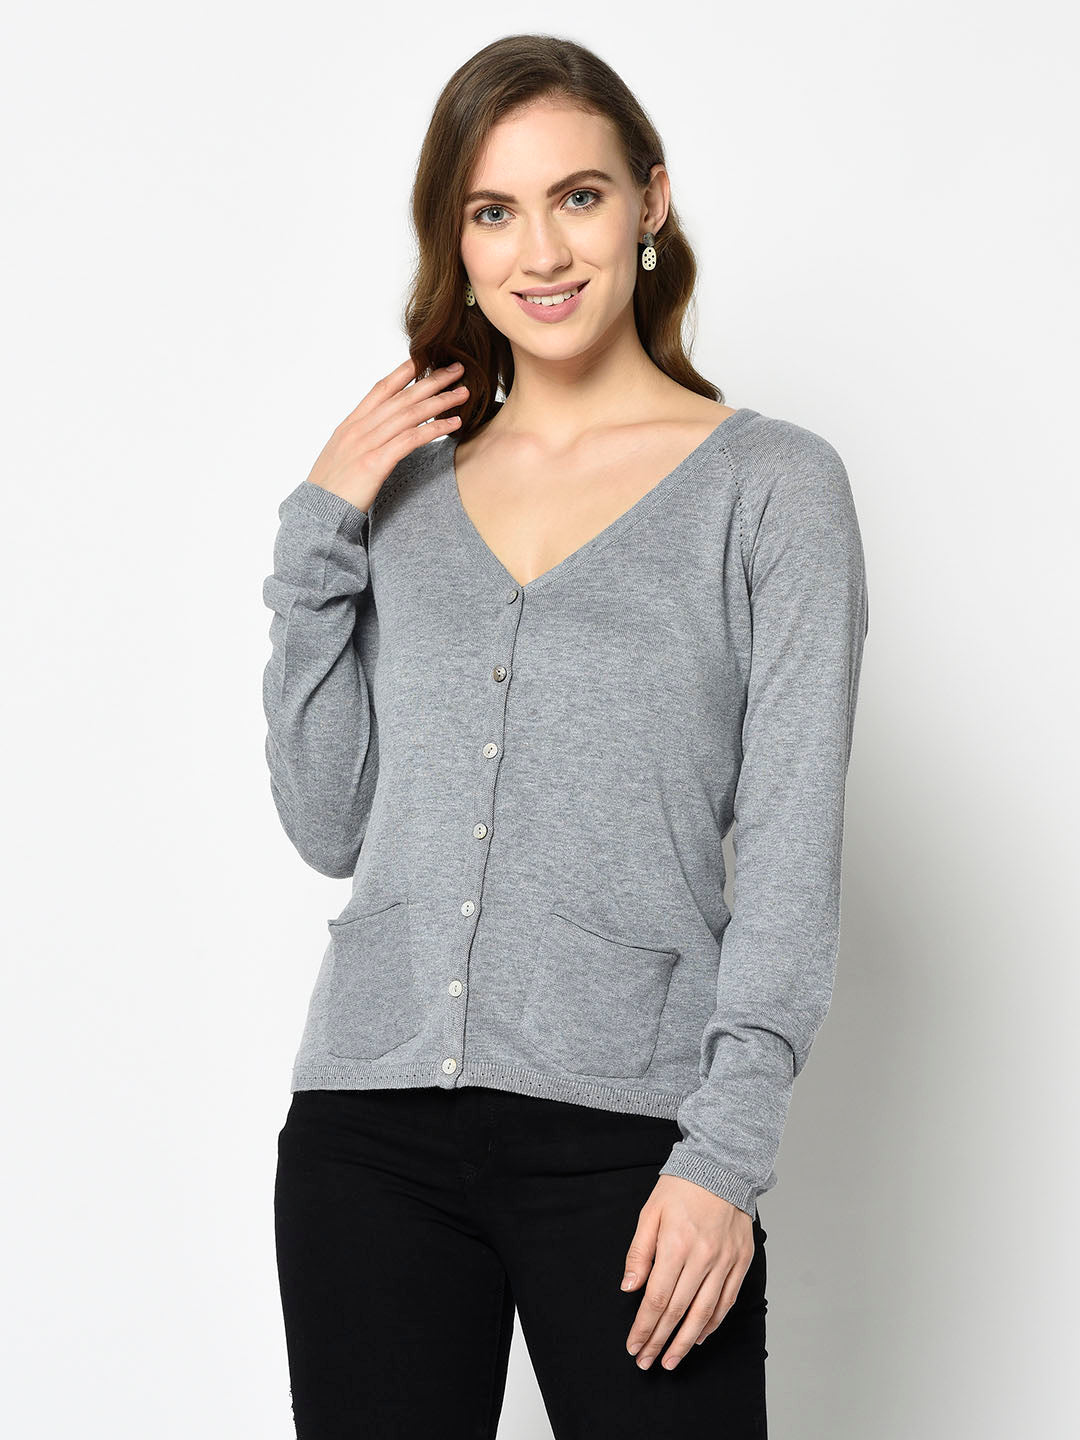 100% Linen Grey V-neck Cardigan - Avsoy